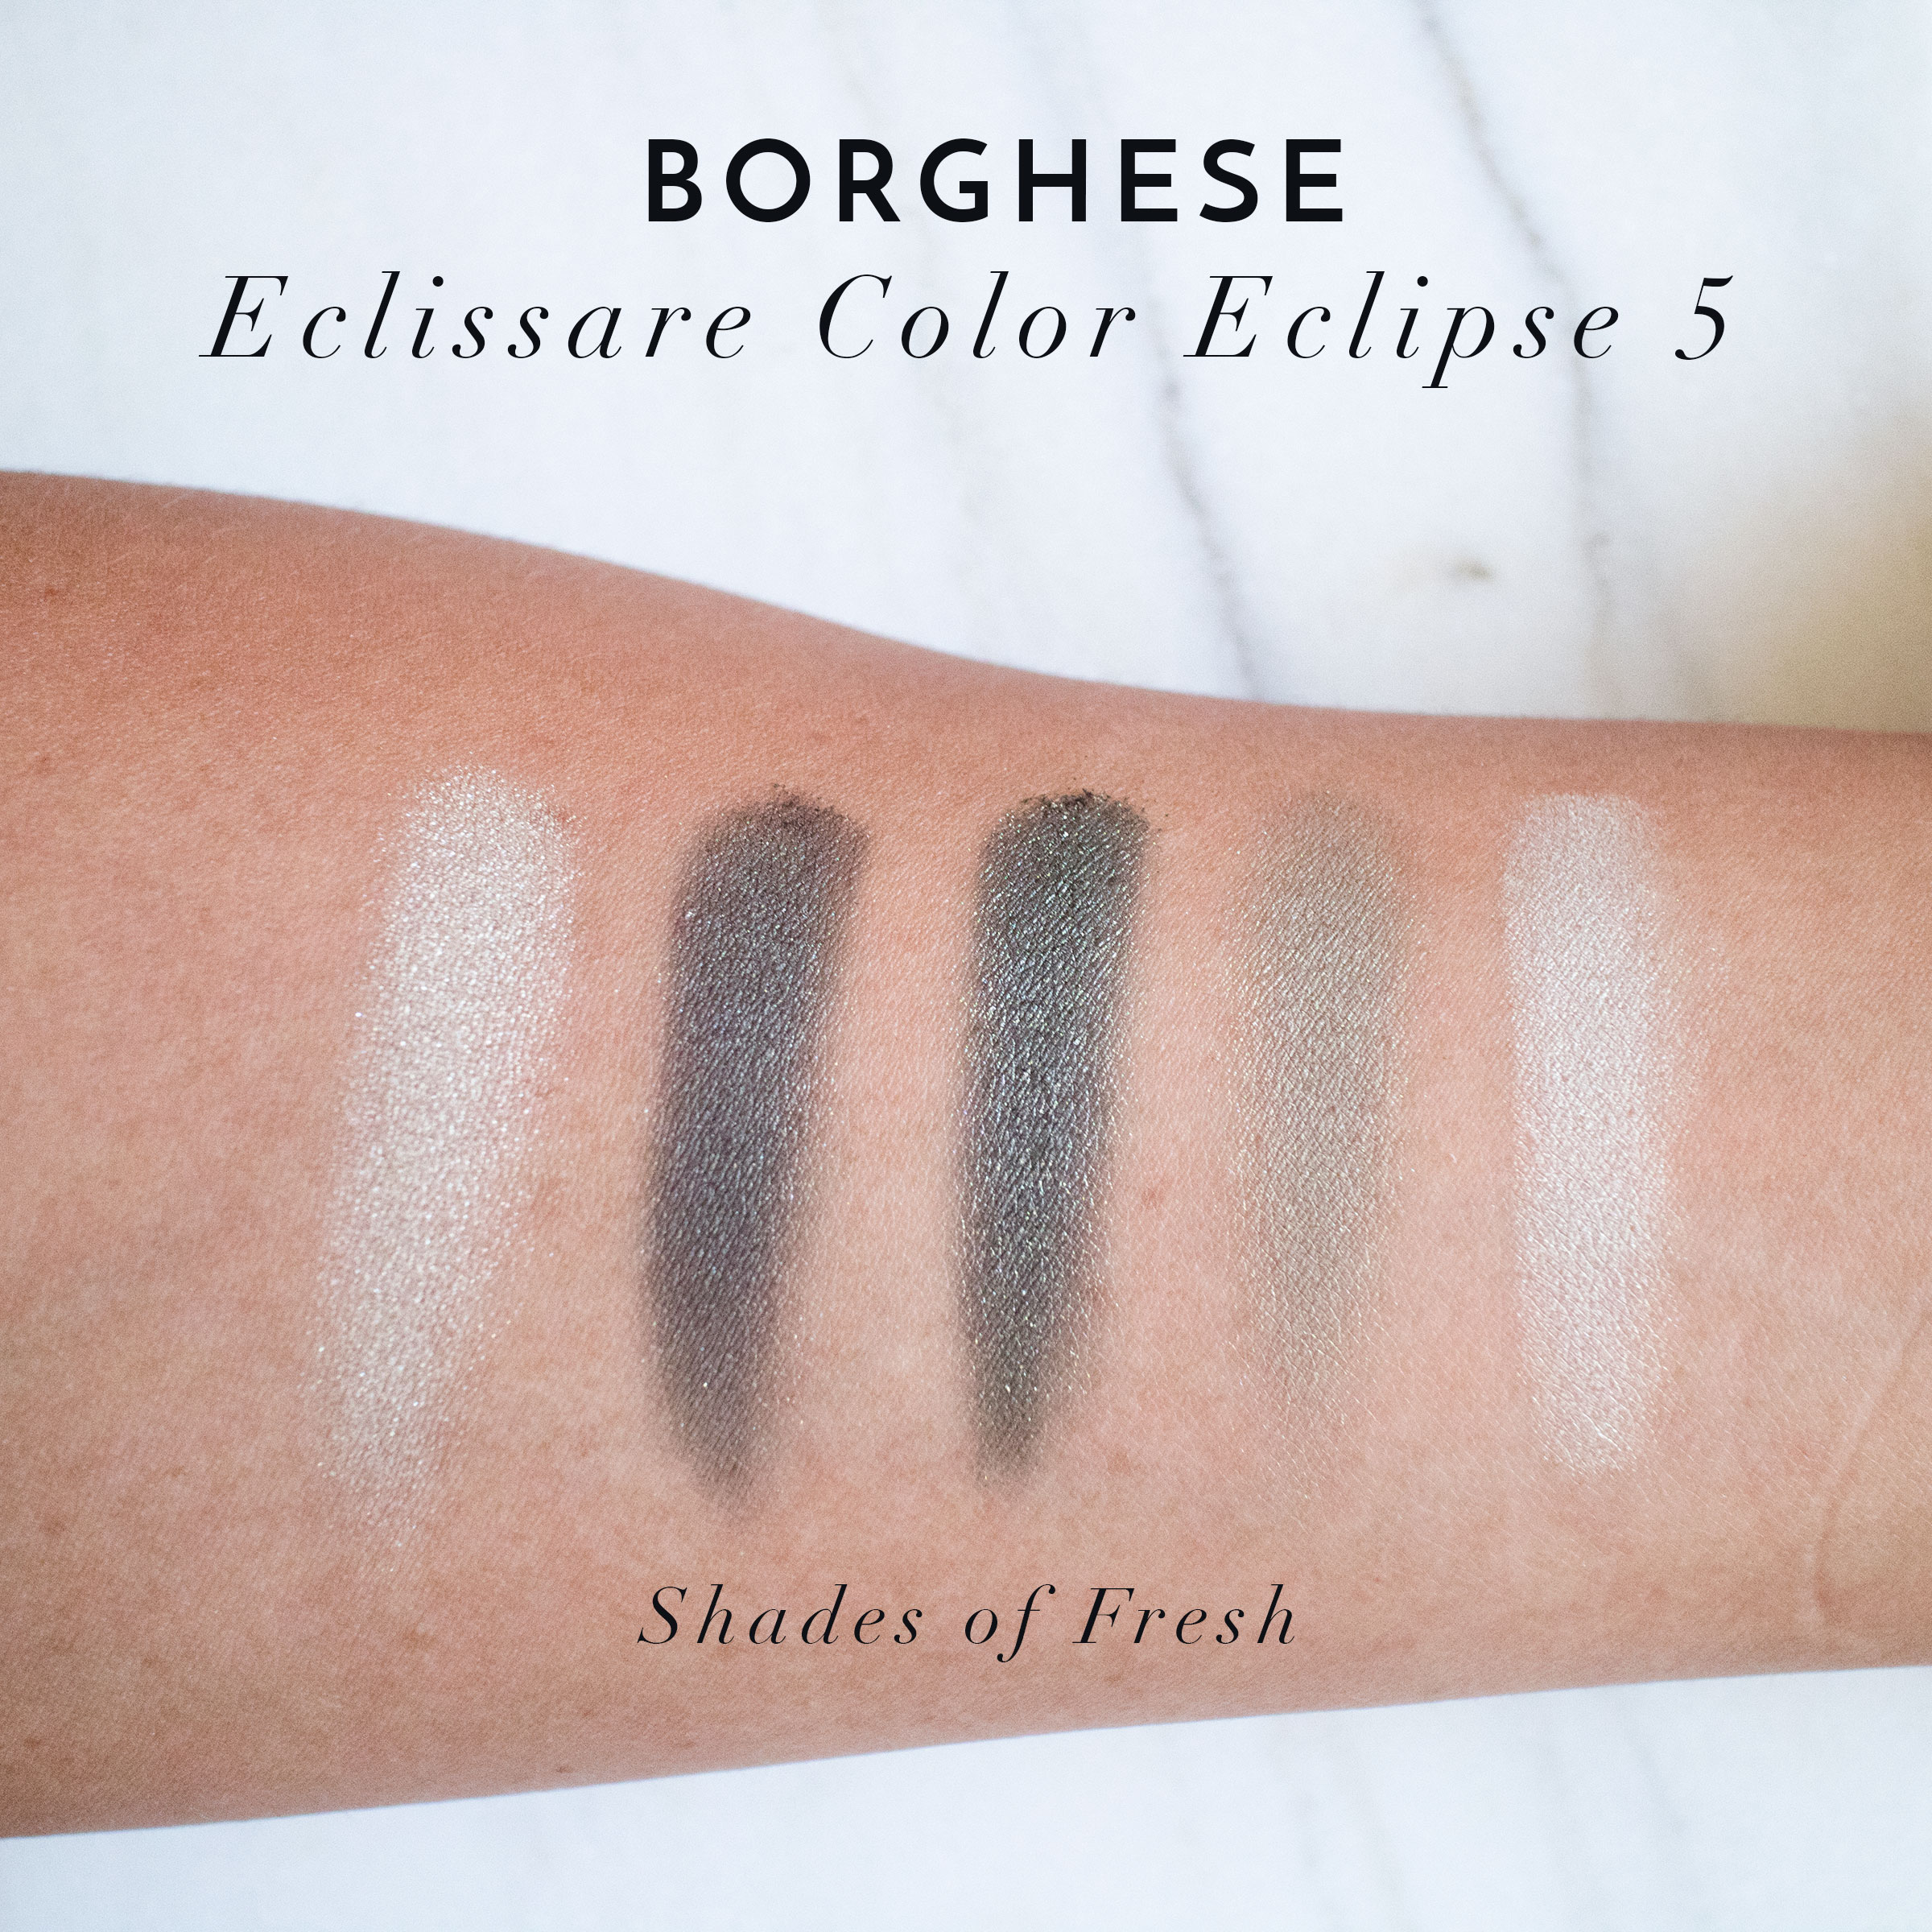 The Beauty Vanity | Borgehese Summer 2015 Eclissare Color Eclipse 5 Shades of Fresh Swatches Review